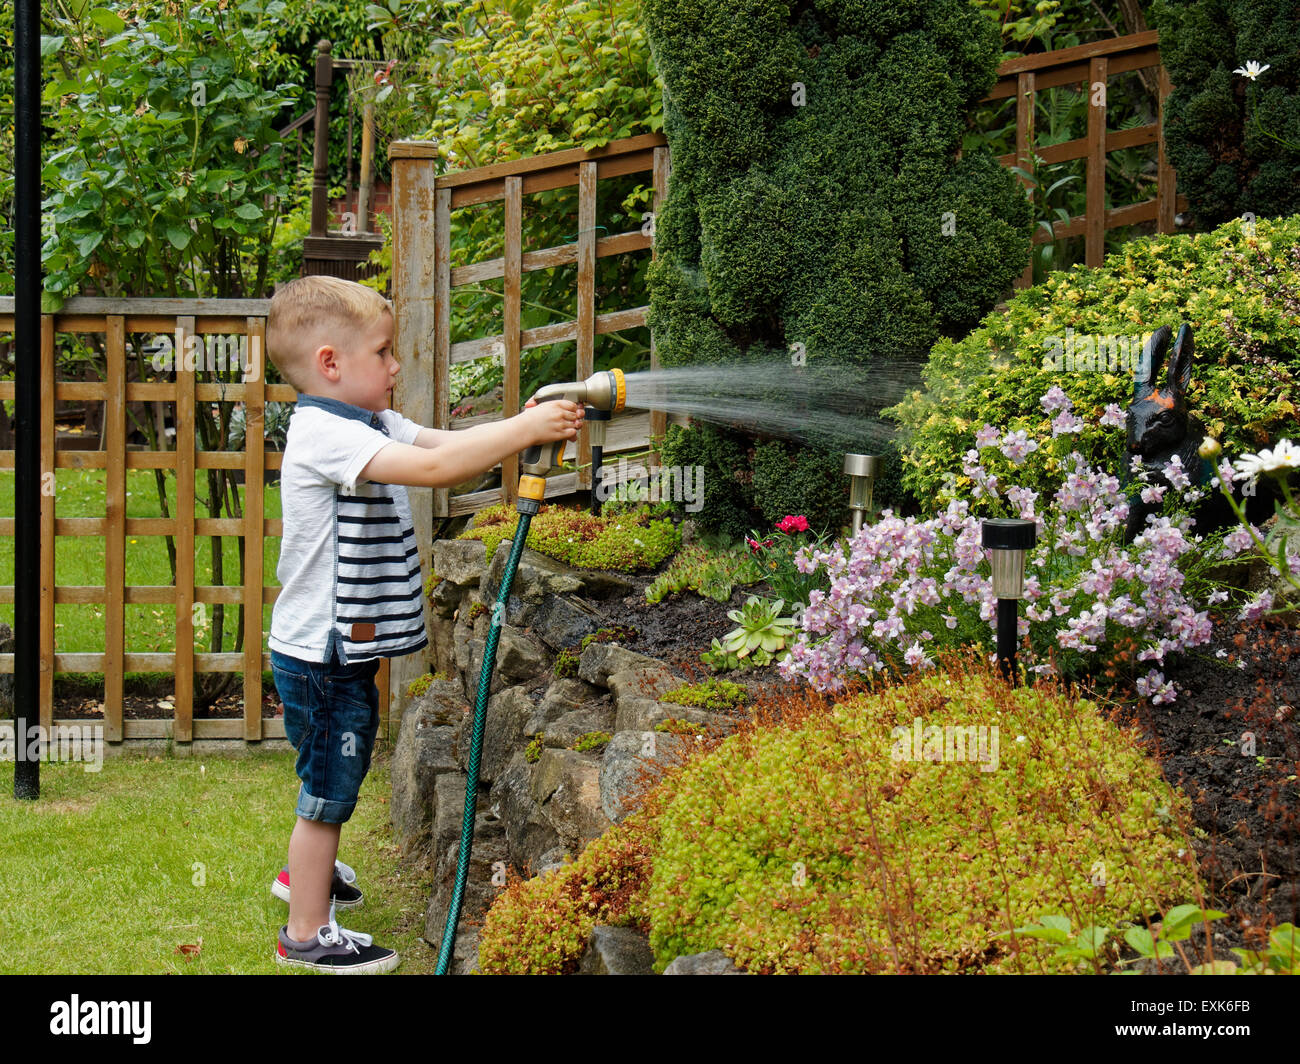 Toddler with hose pipe watering garden plants stock photo for Watering vegetable garden